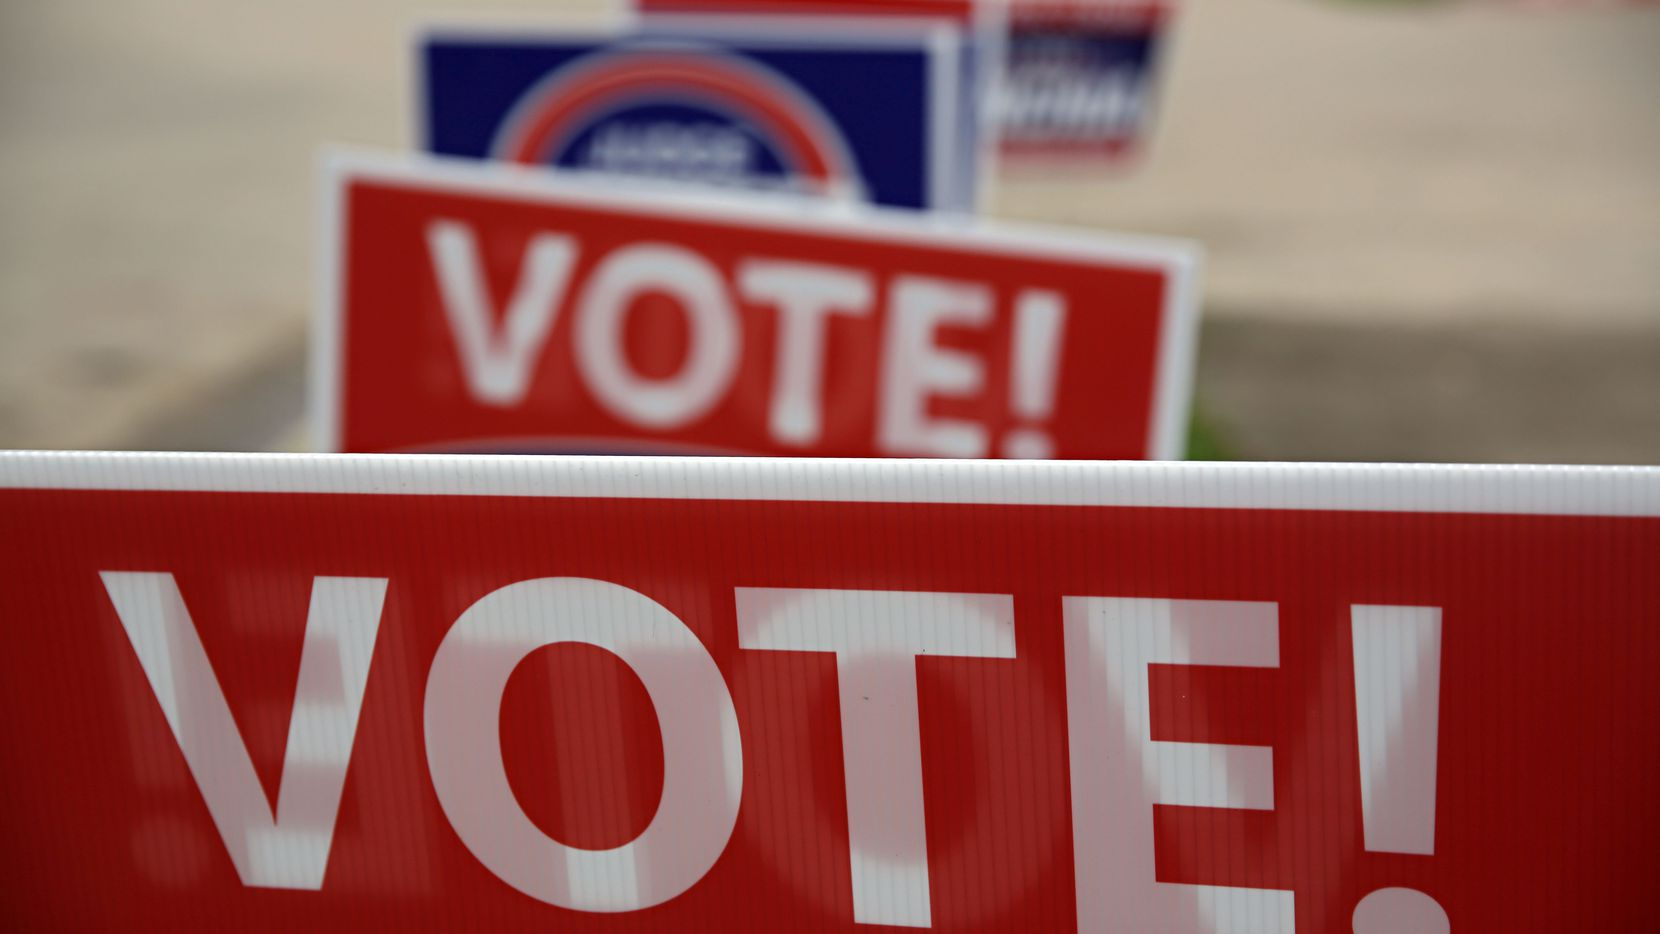 Texas felon who 'didn't even want to go vote' gets prison